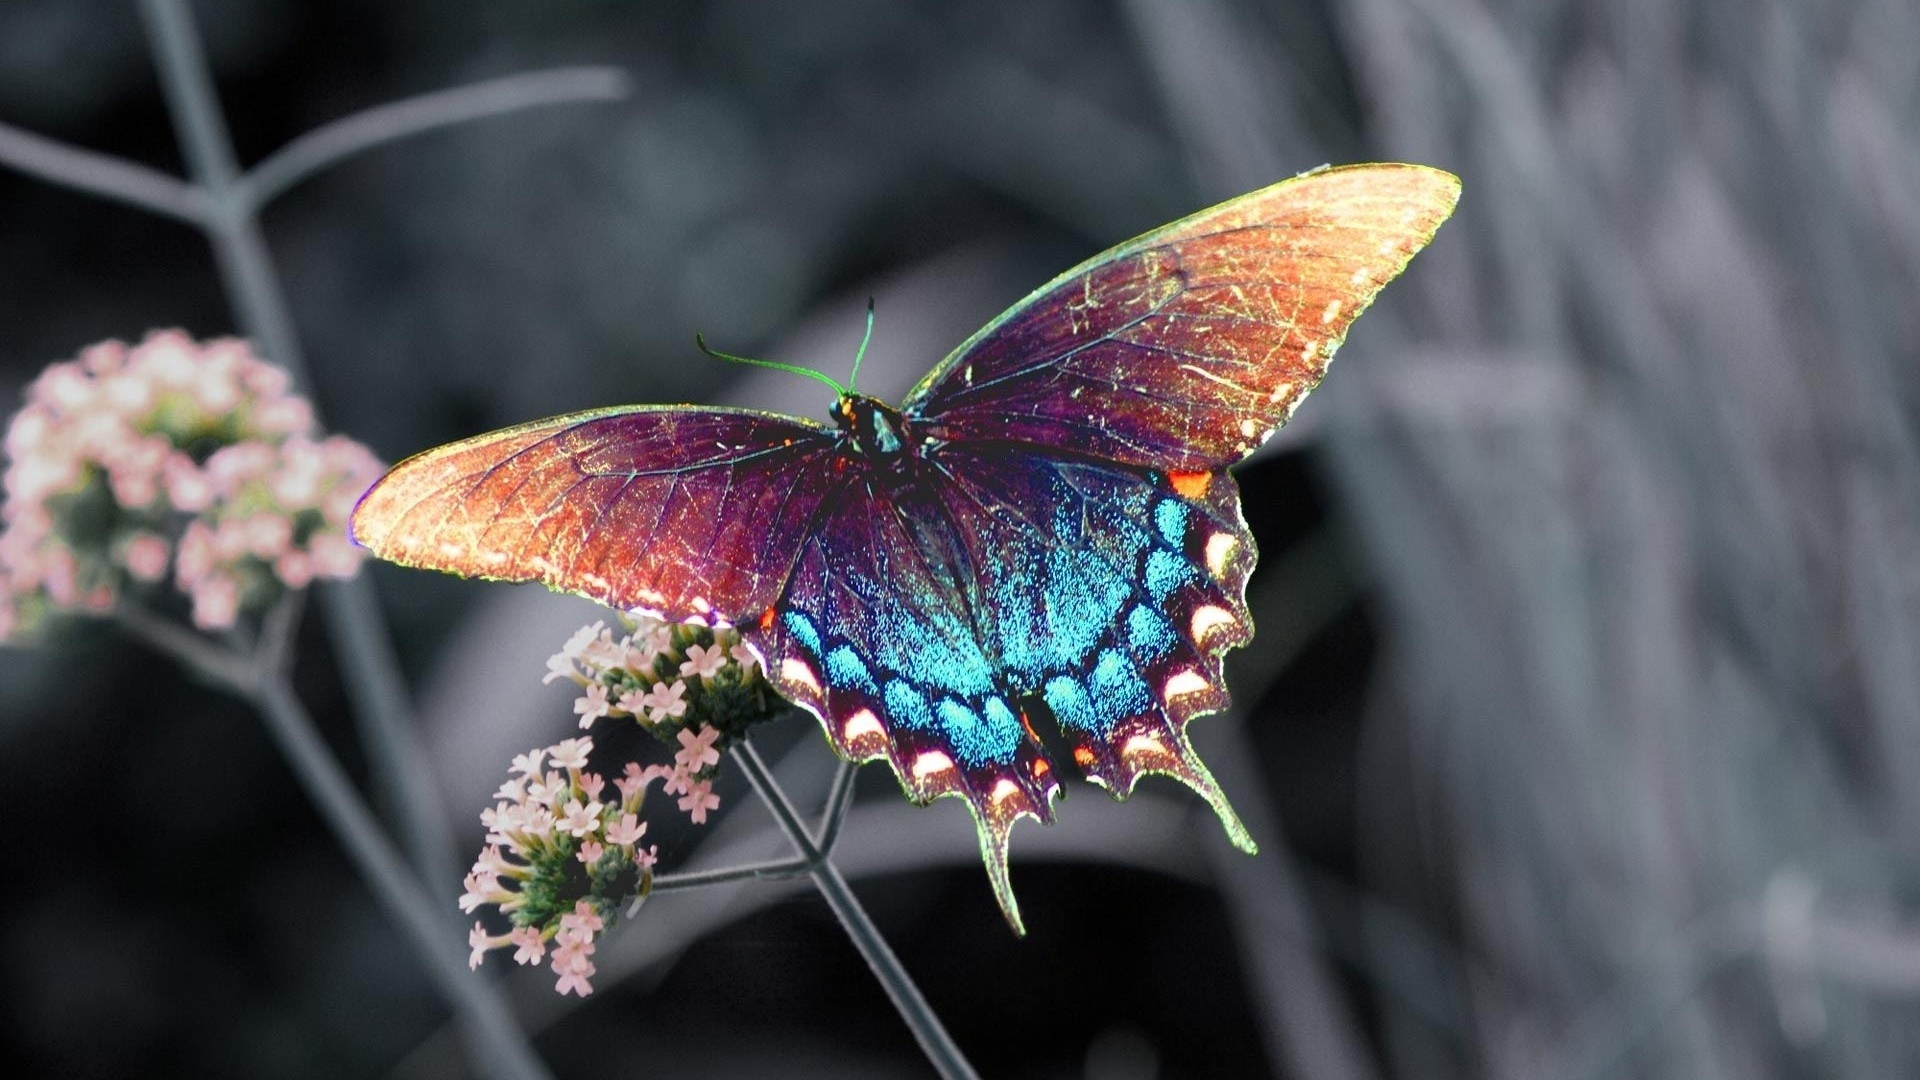 Butterfly Hd Wallpaper High Quality Resolution For Butterfly Hd Wallpapers 1080p 1920x1080 Wallpaper Teahub Io